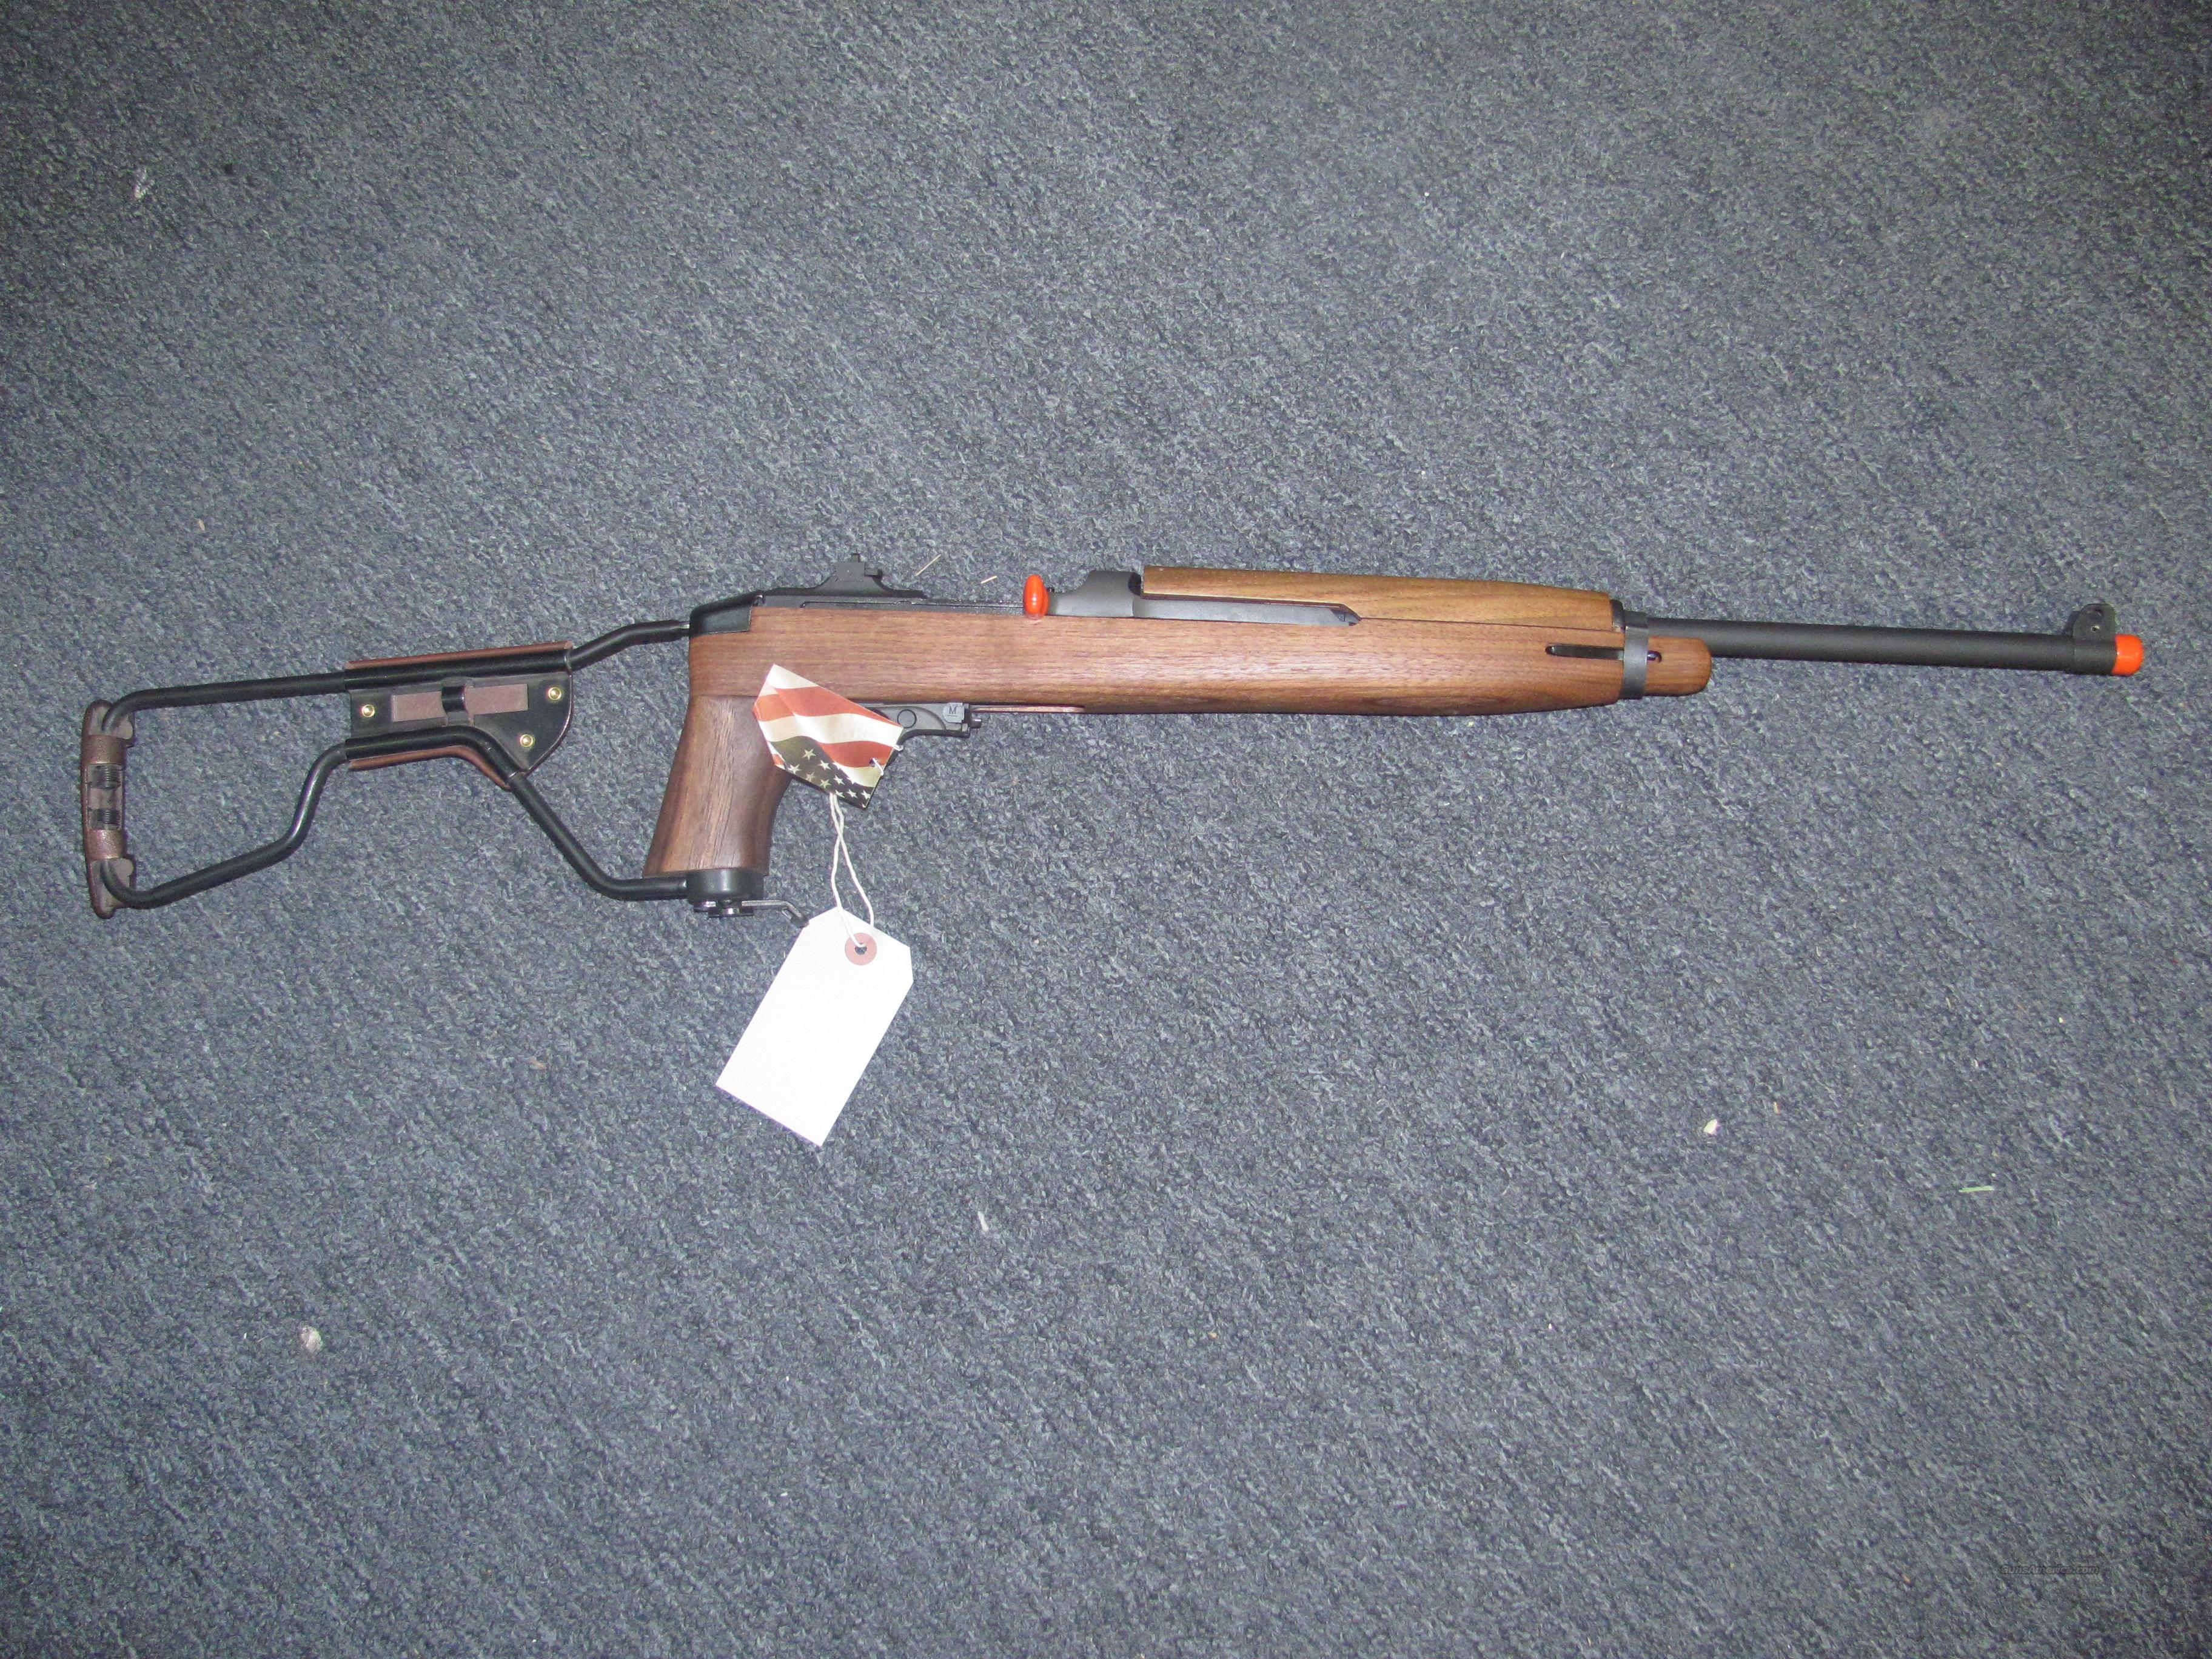 M1 Carbine with folding stock (Para Trooper)  Guns > Rifles > Auto Ordnance Rifles